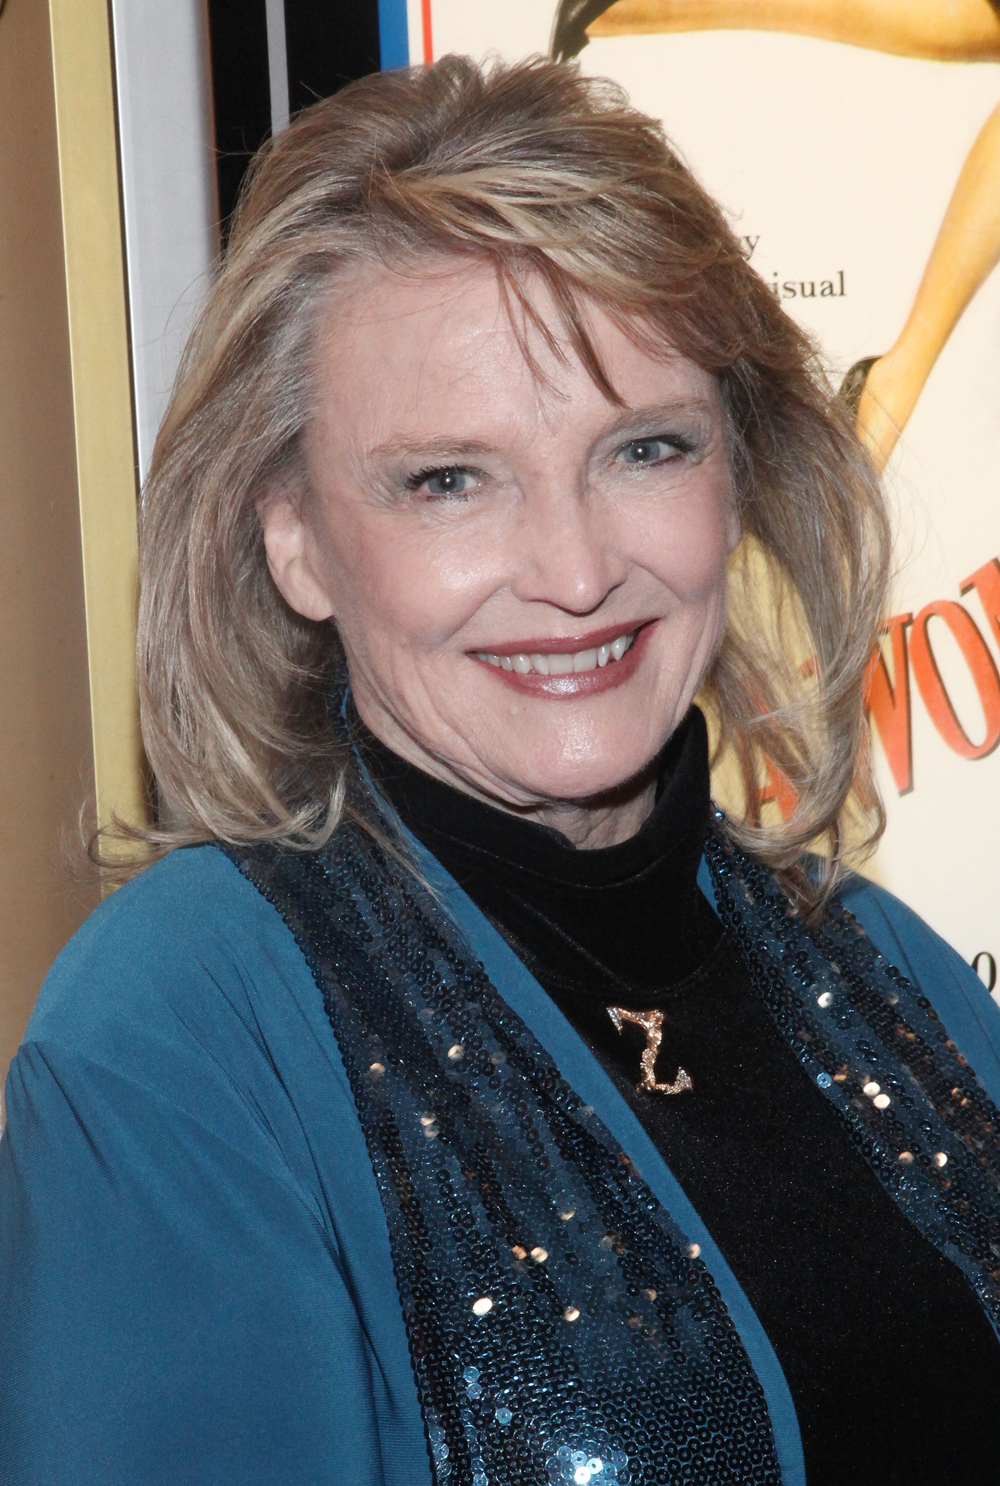 Karolyn Grimes Karolyn Grimes new images